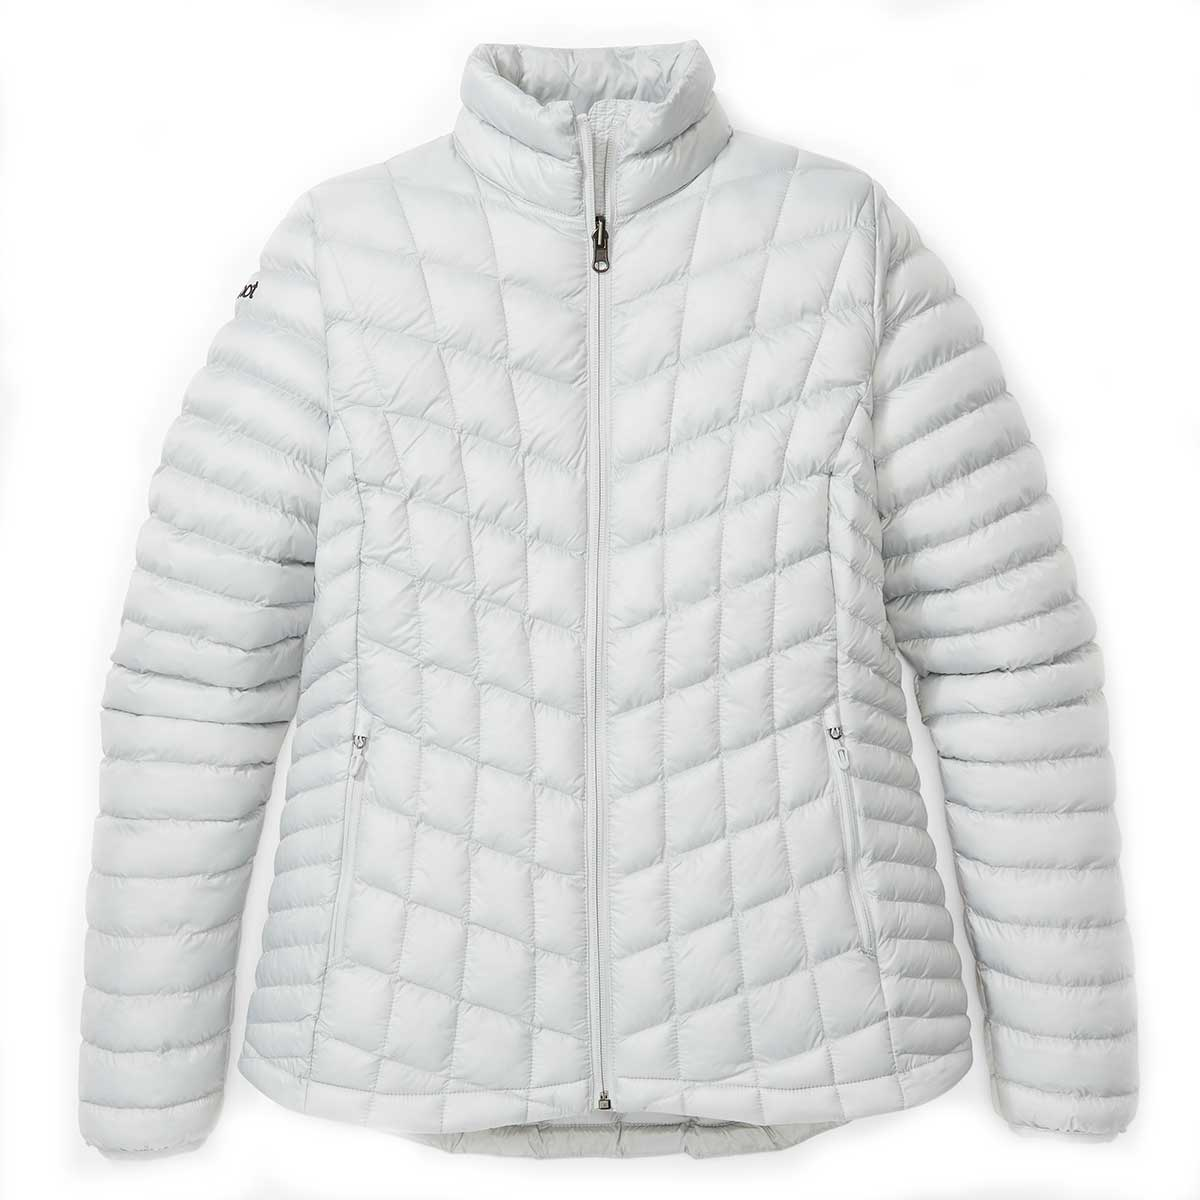 Marmot Women's Featherless Jacket in Bright Steel